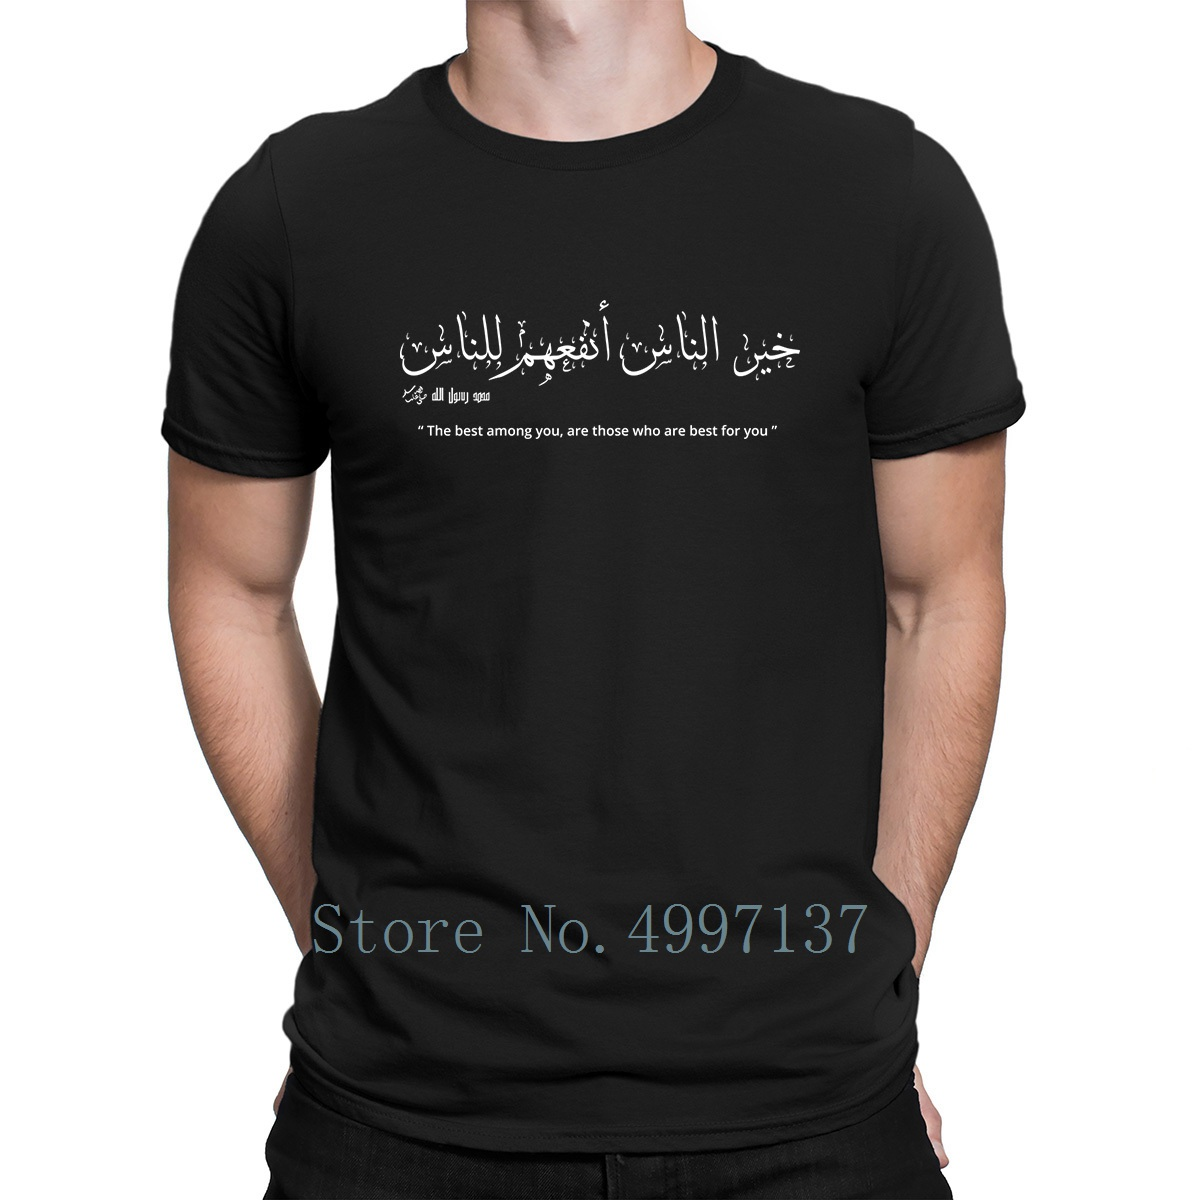 Islamic   Shirt   Arabic   T     Shirt   Famous Novelty Tee   Shirt   Summer Style Clothing Size S-3xl Design Comfortable   Shirt